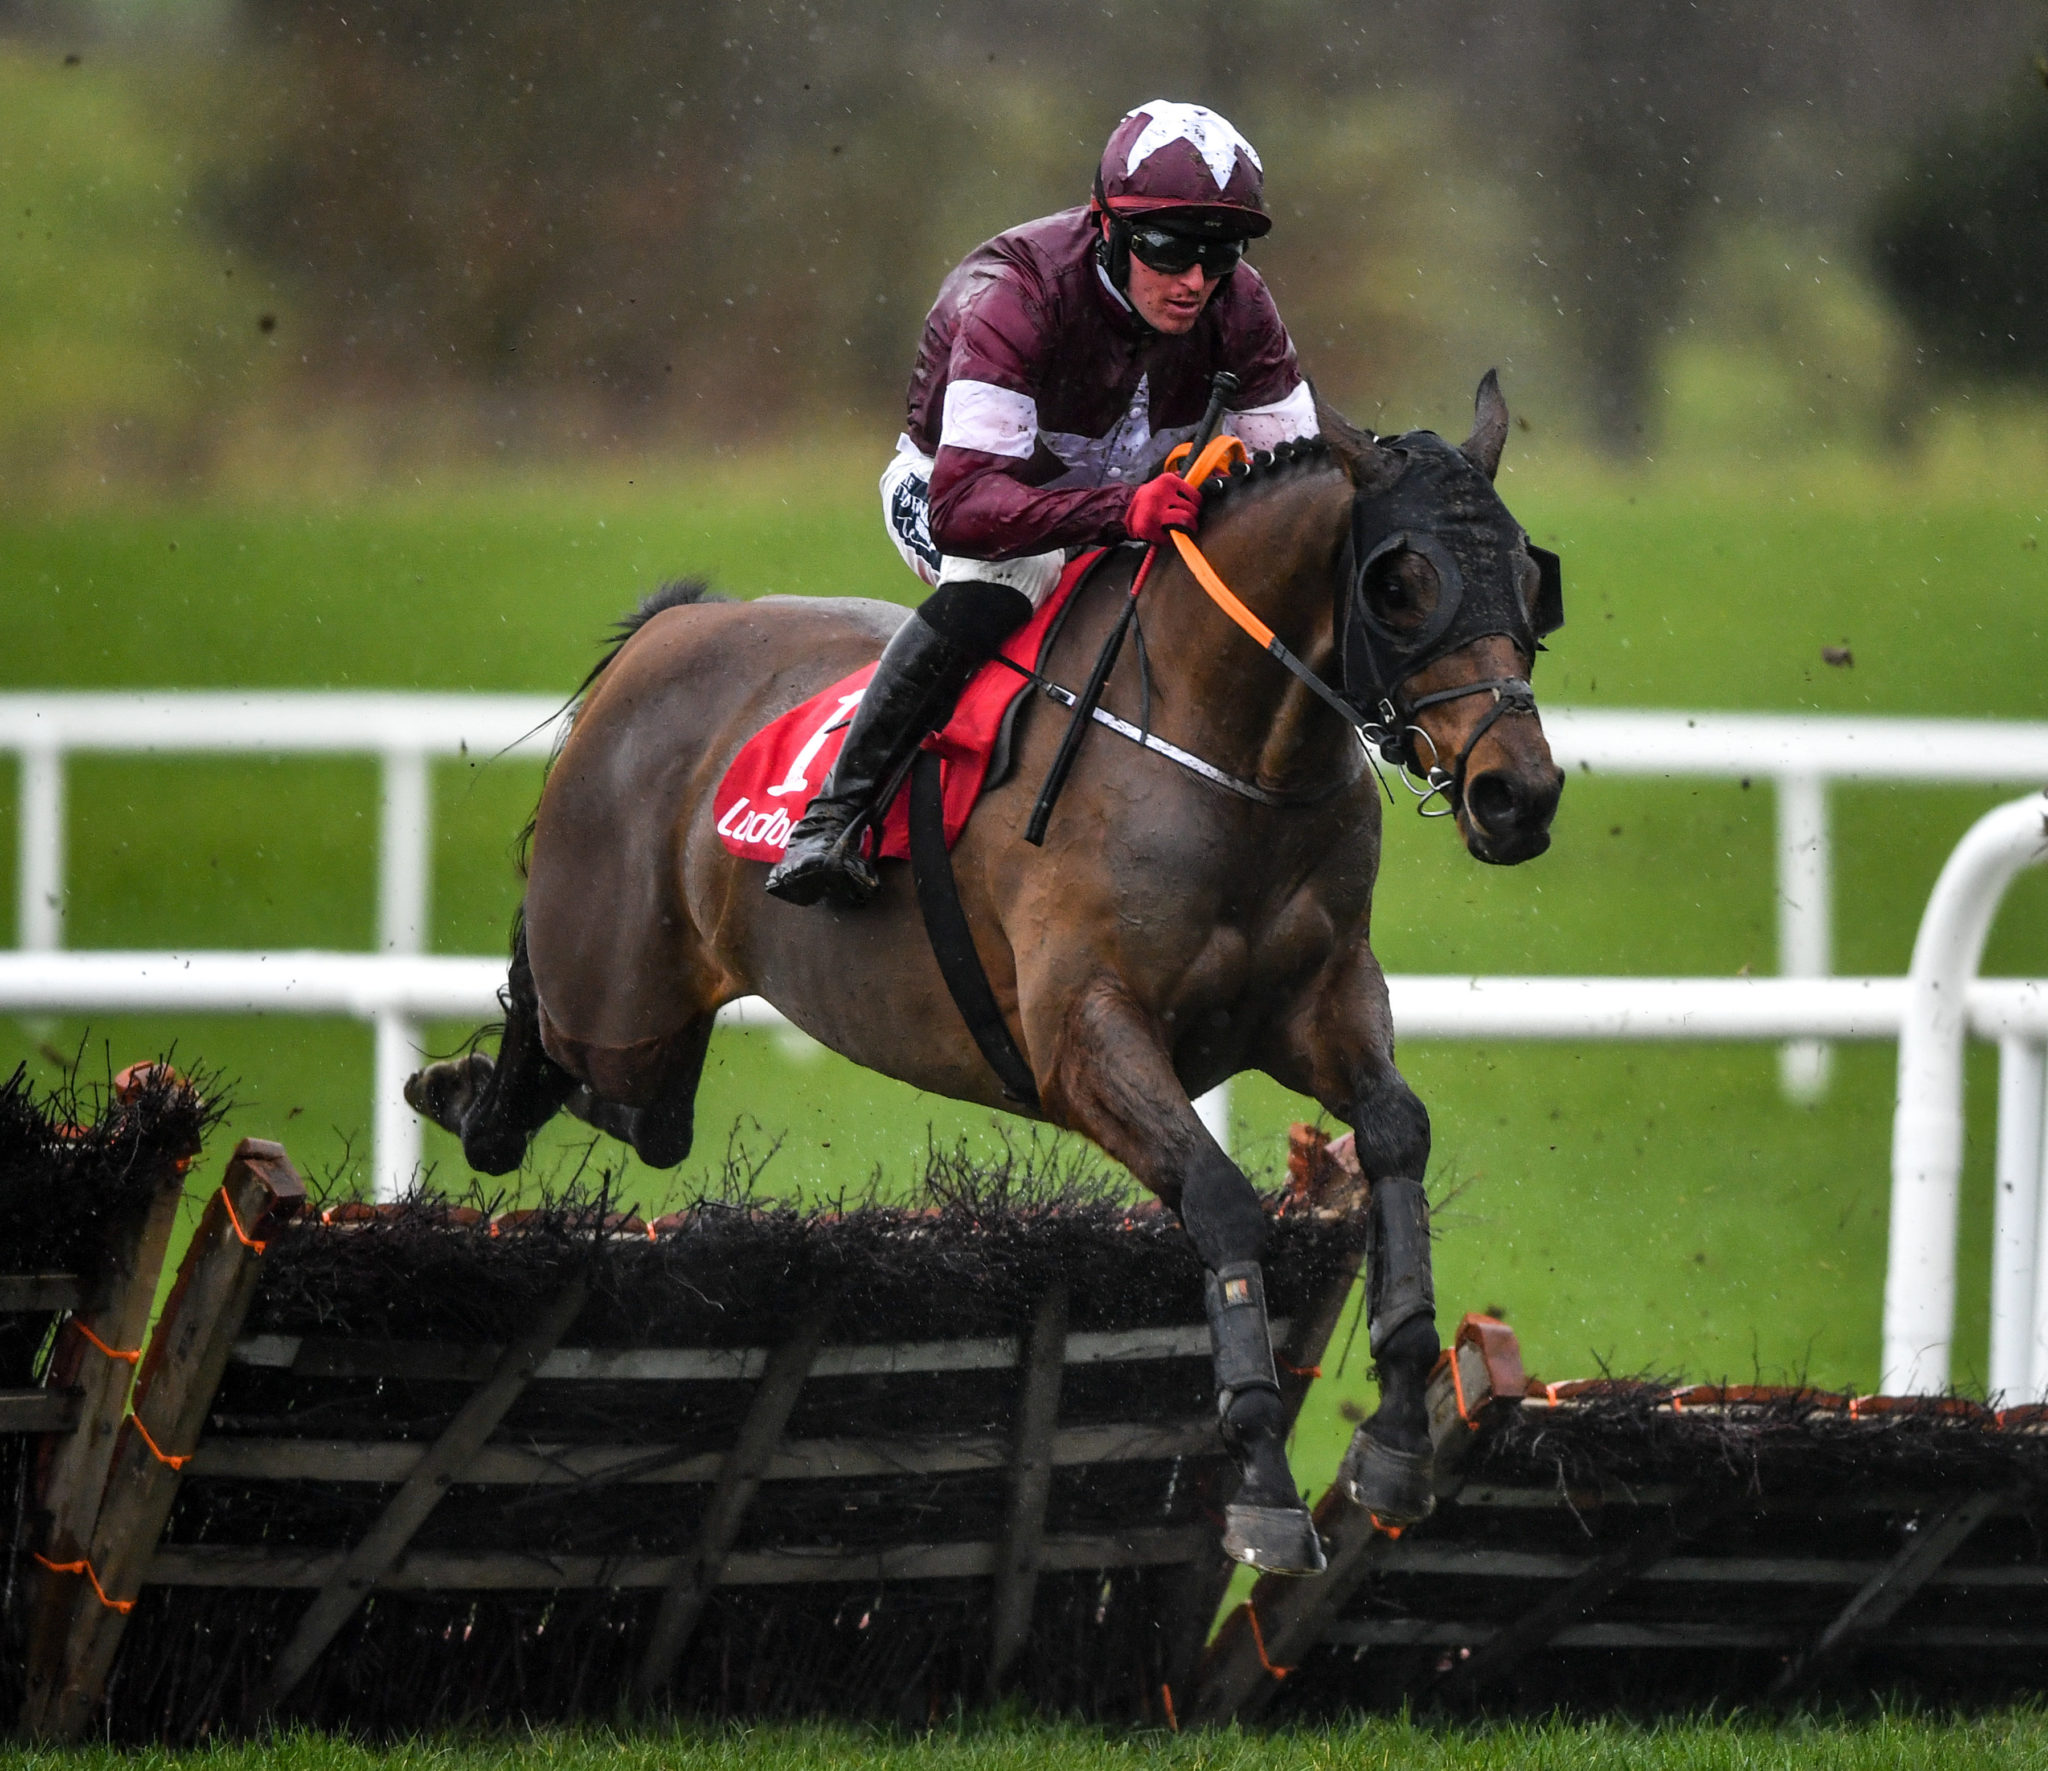 Keith Donoghue and Tiger Roll